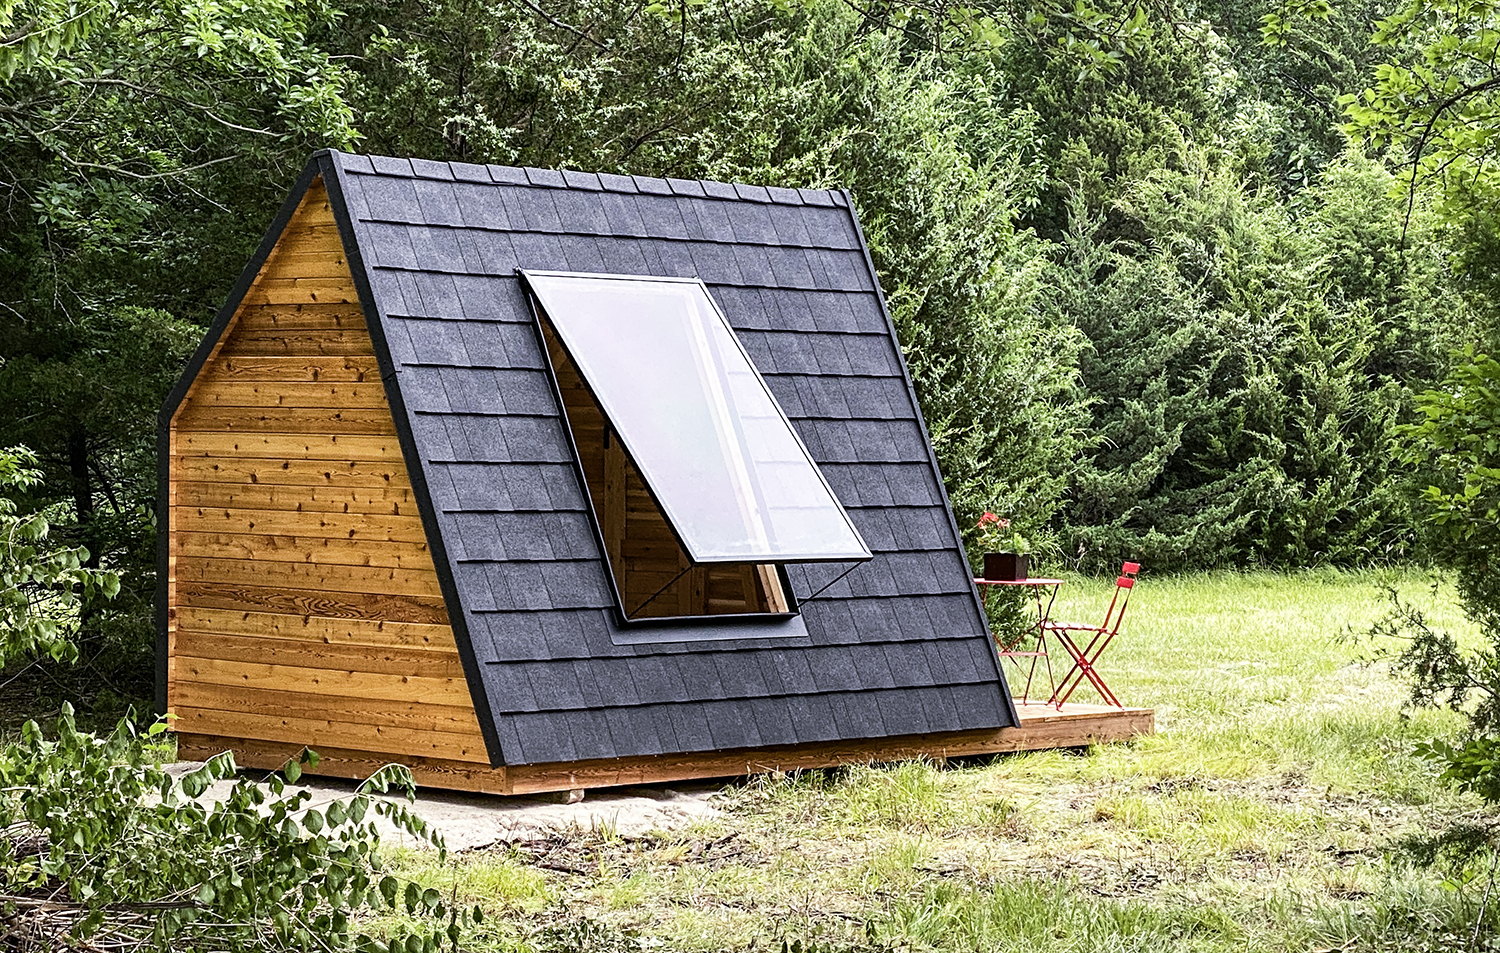 Coming soon: Looking for a happy medium between a cabin and a tent? Our A-frames are made just for you!